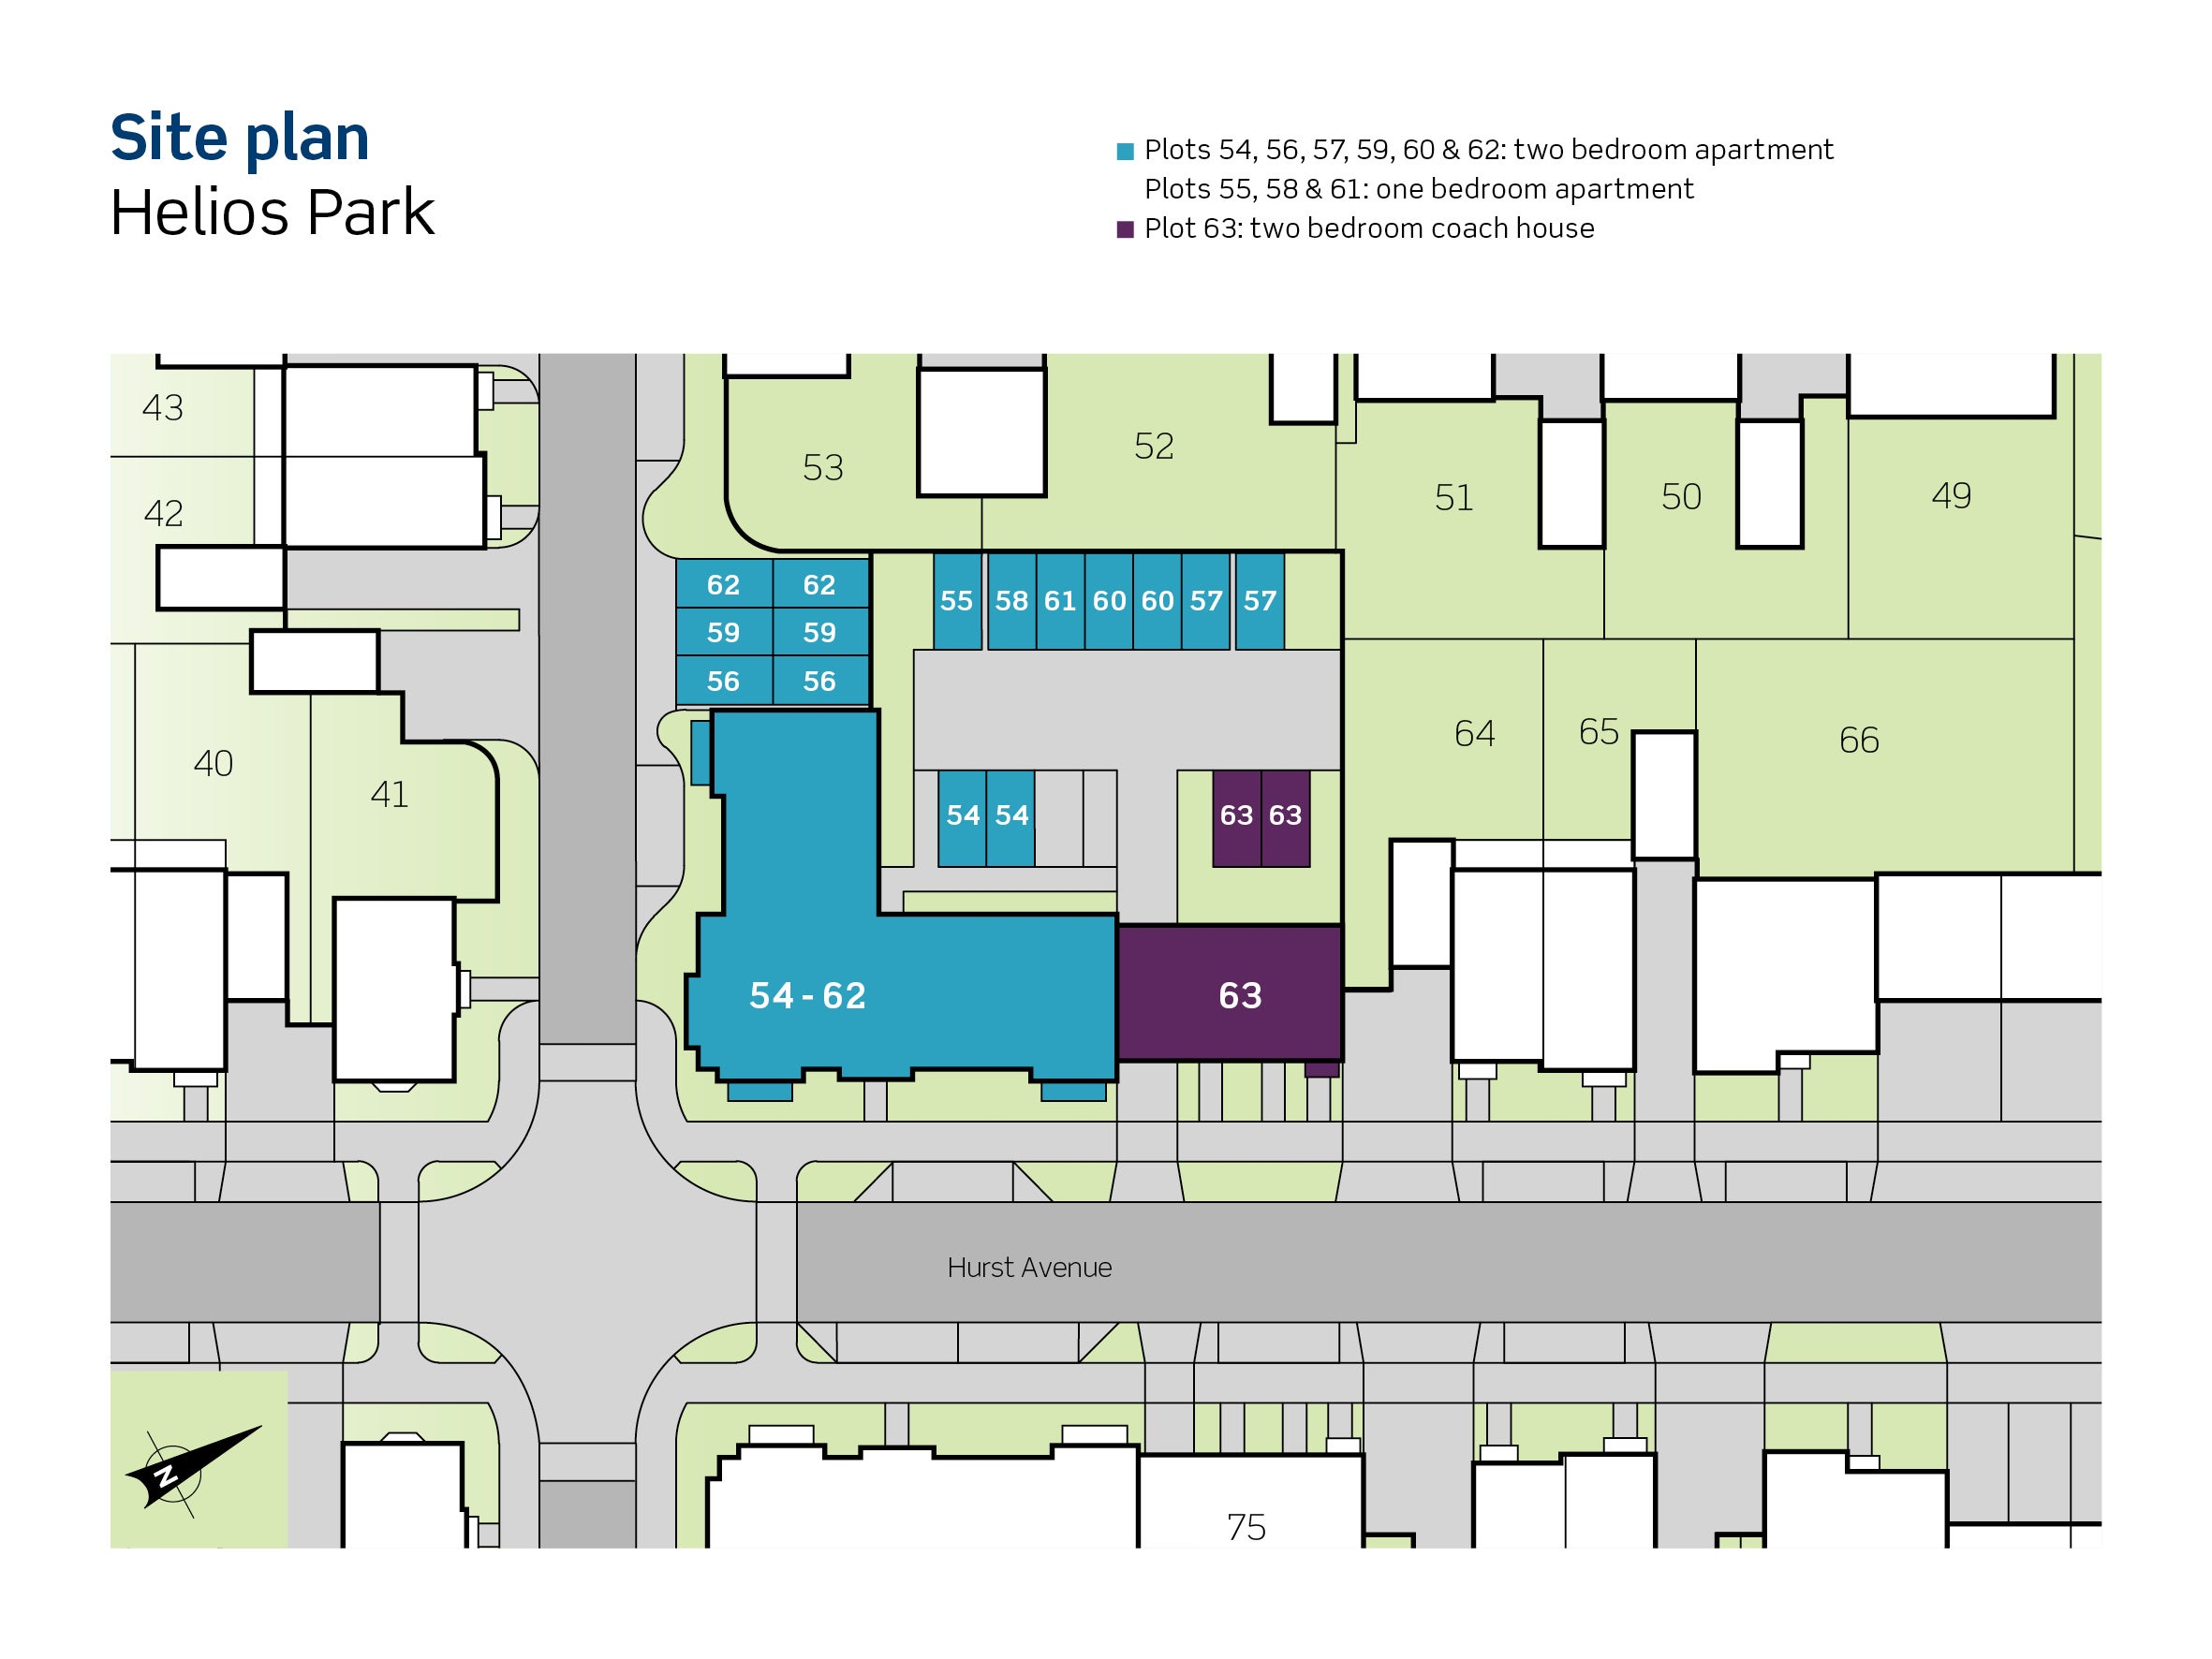 An image of Phase 1 site plan at Helios Park